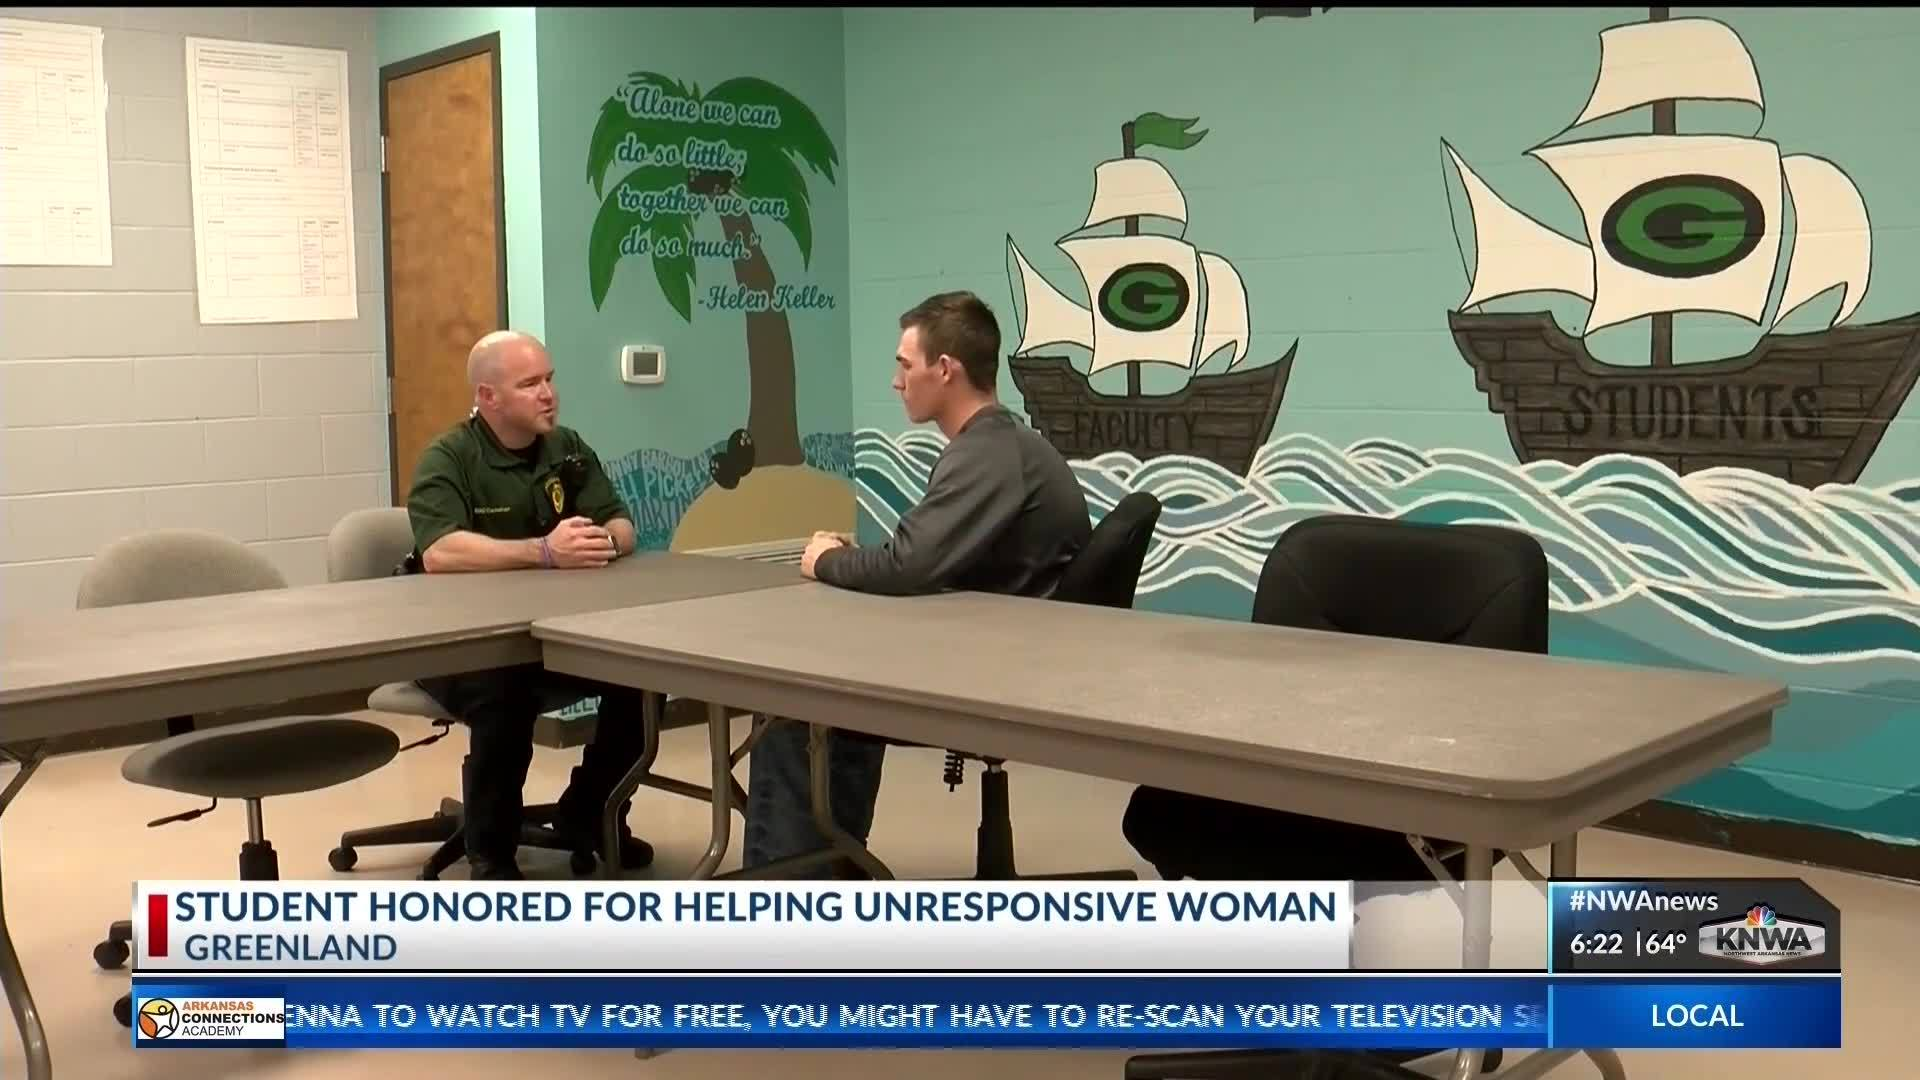 KNWA_News_at_6_p_m___Teen_honored_for_ca_6_20190329233323